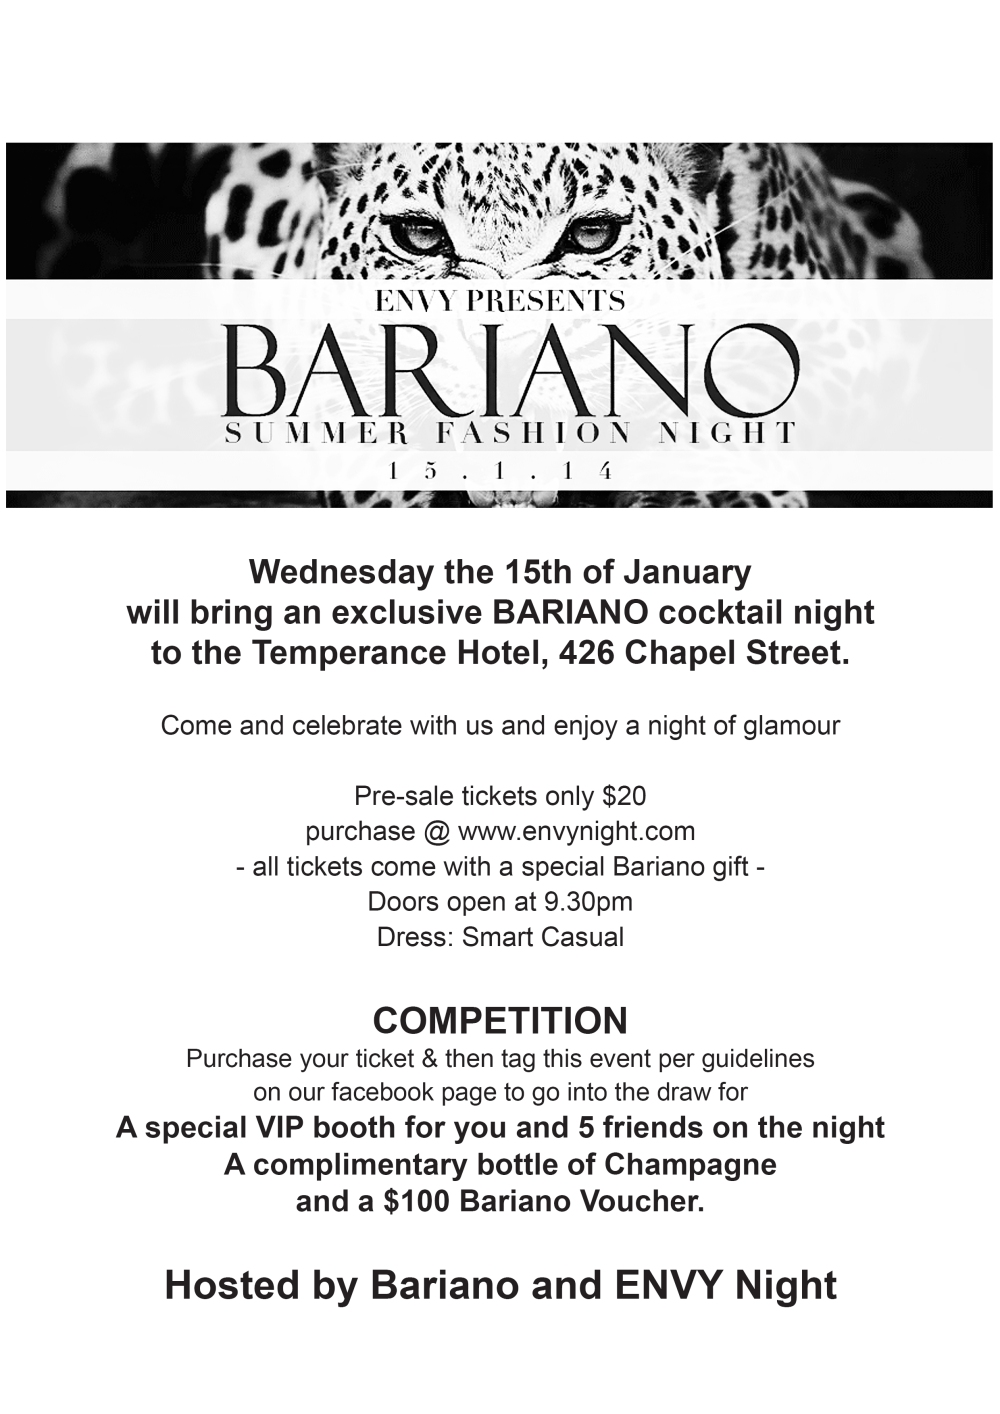 JOIN US FOR A BARIANO COCKTAIL NIGHT!